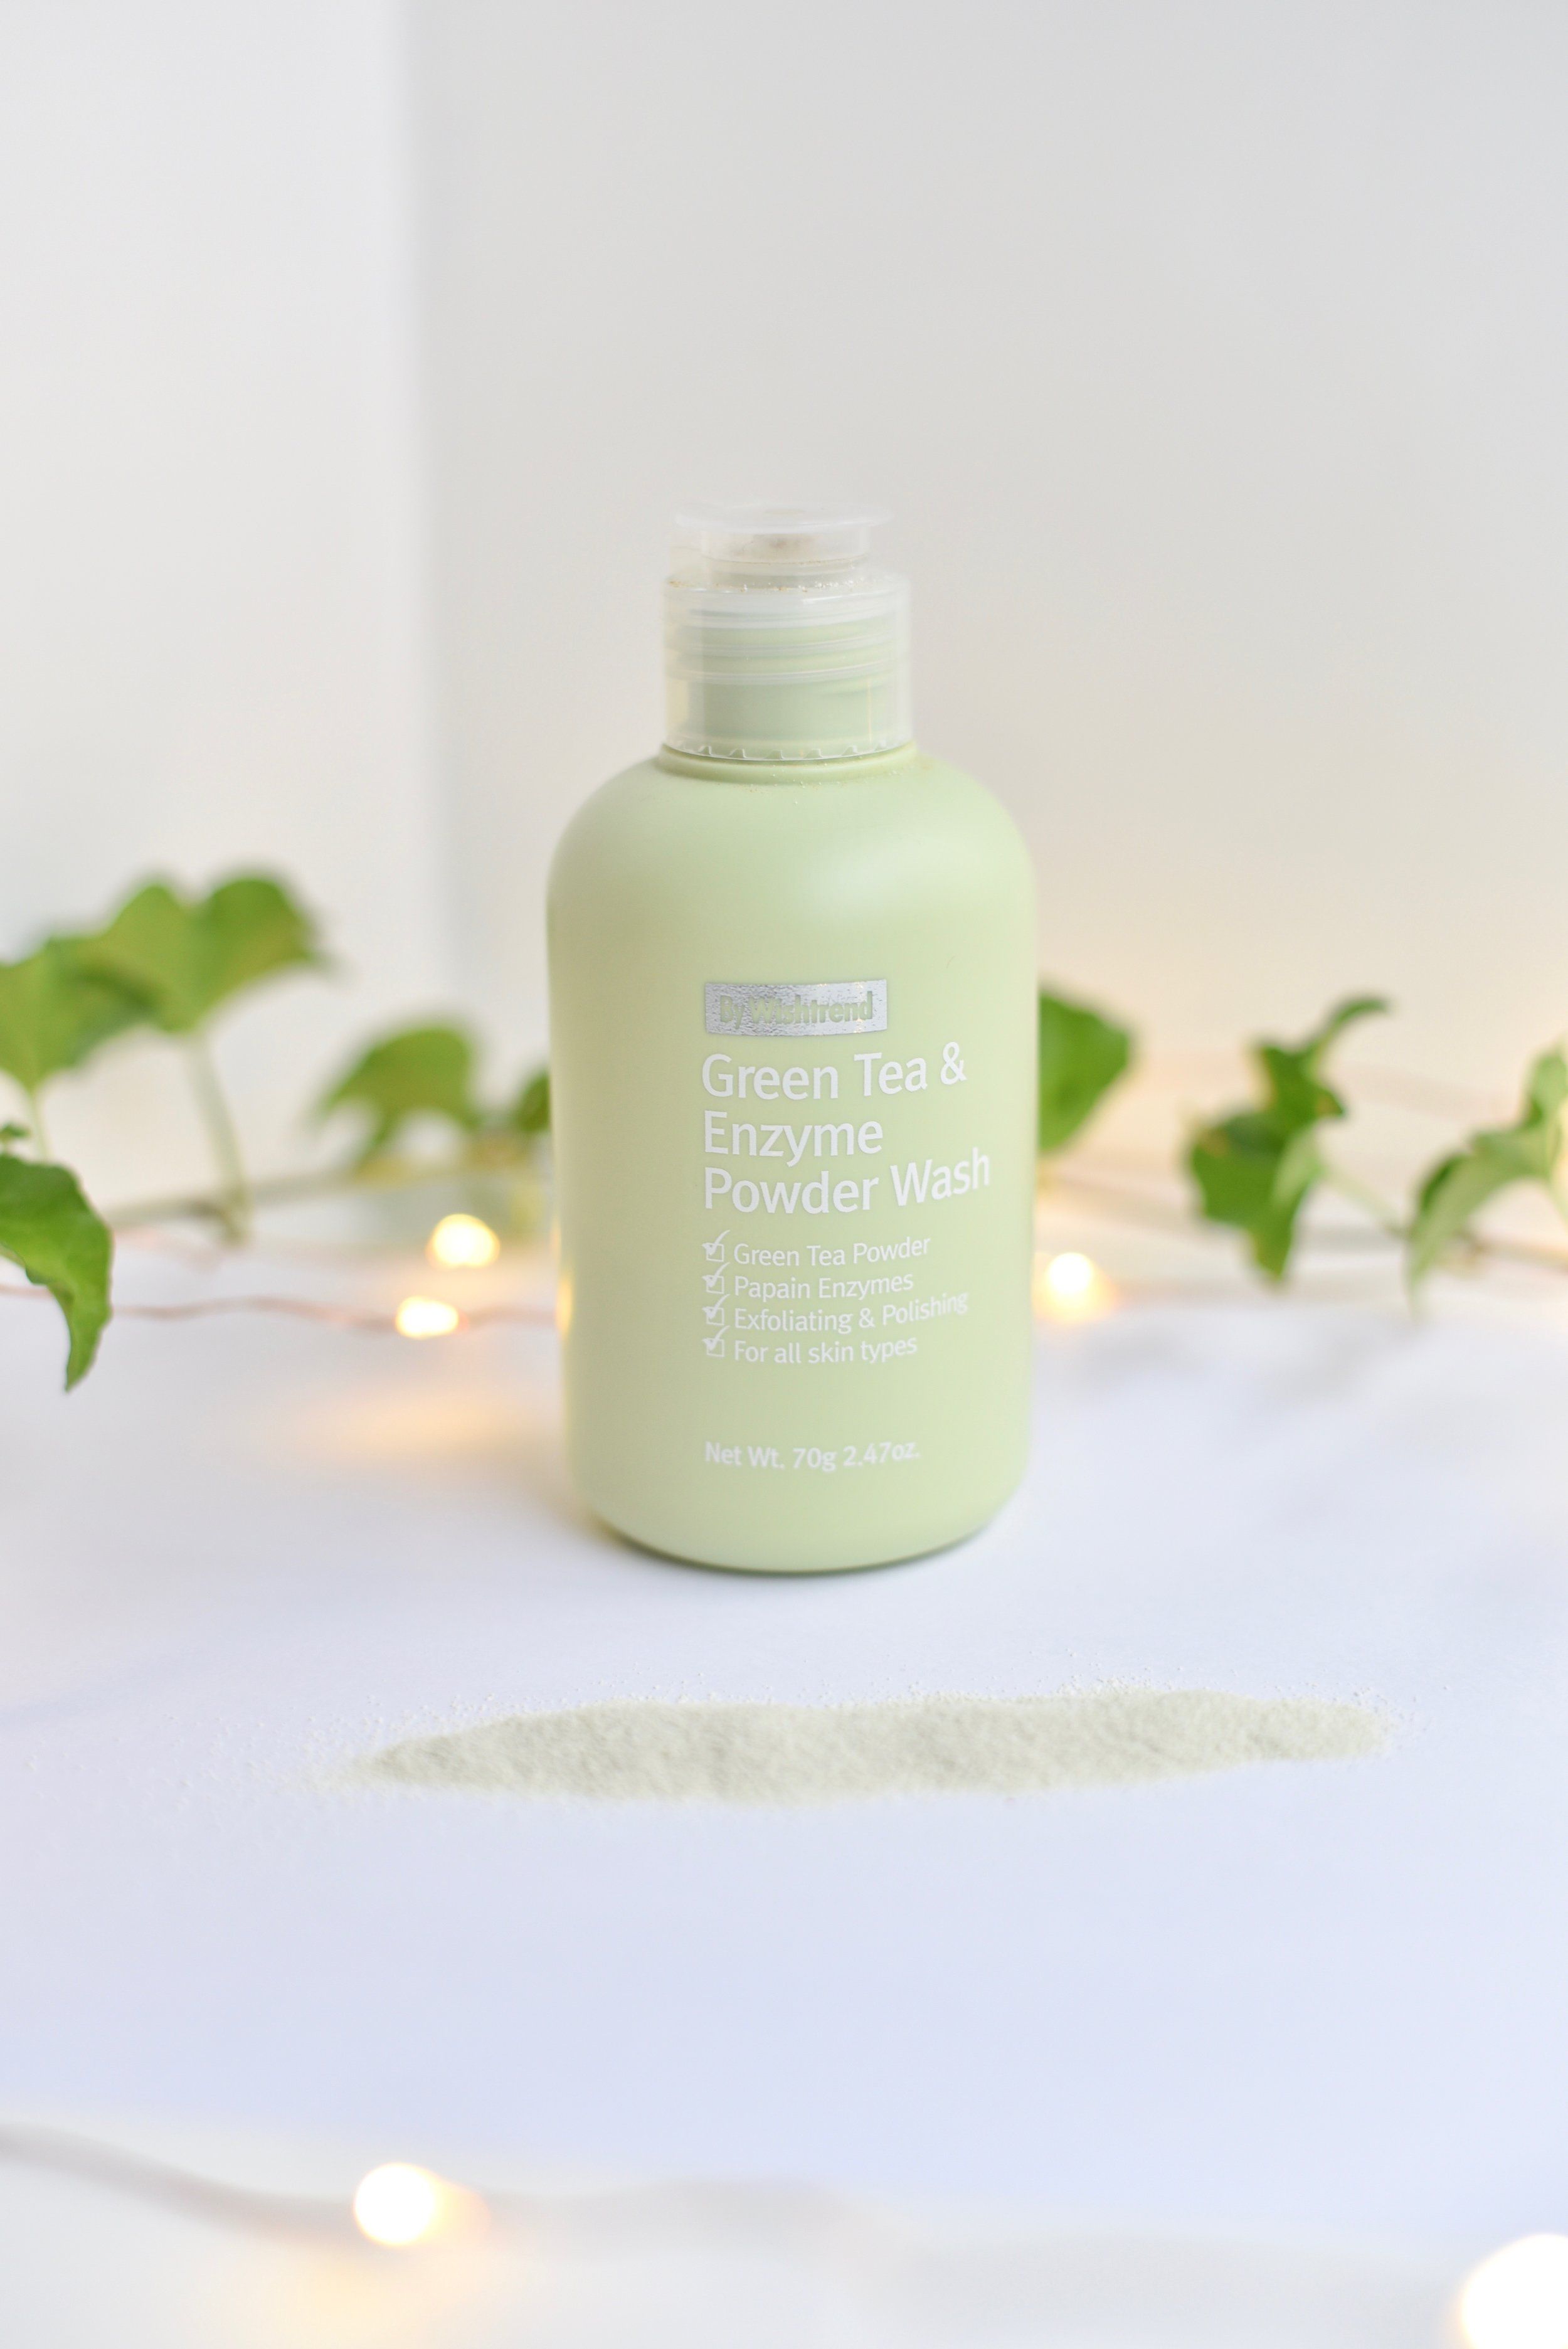 3. ByWishtrend Green Tea Powder Wash - To gently exfoliate and deep cleanse the skin.